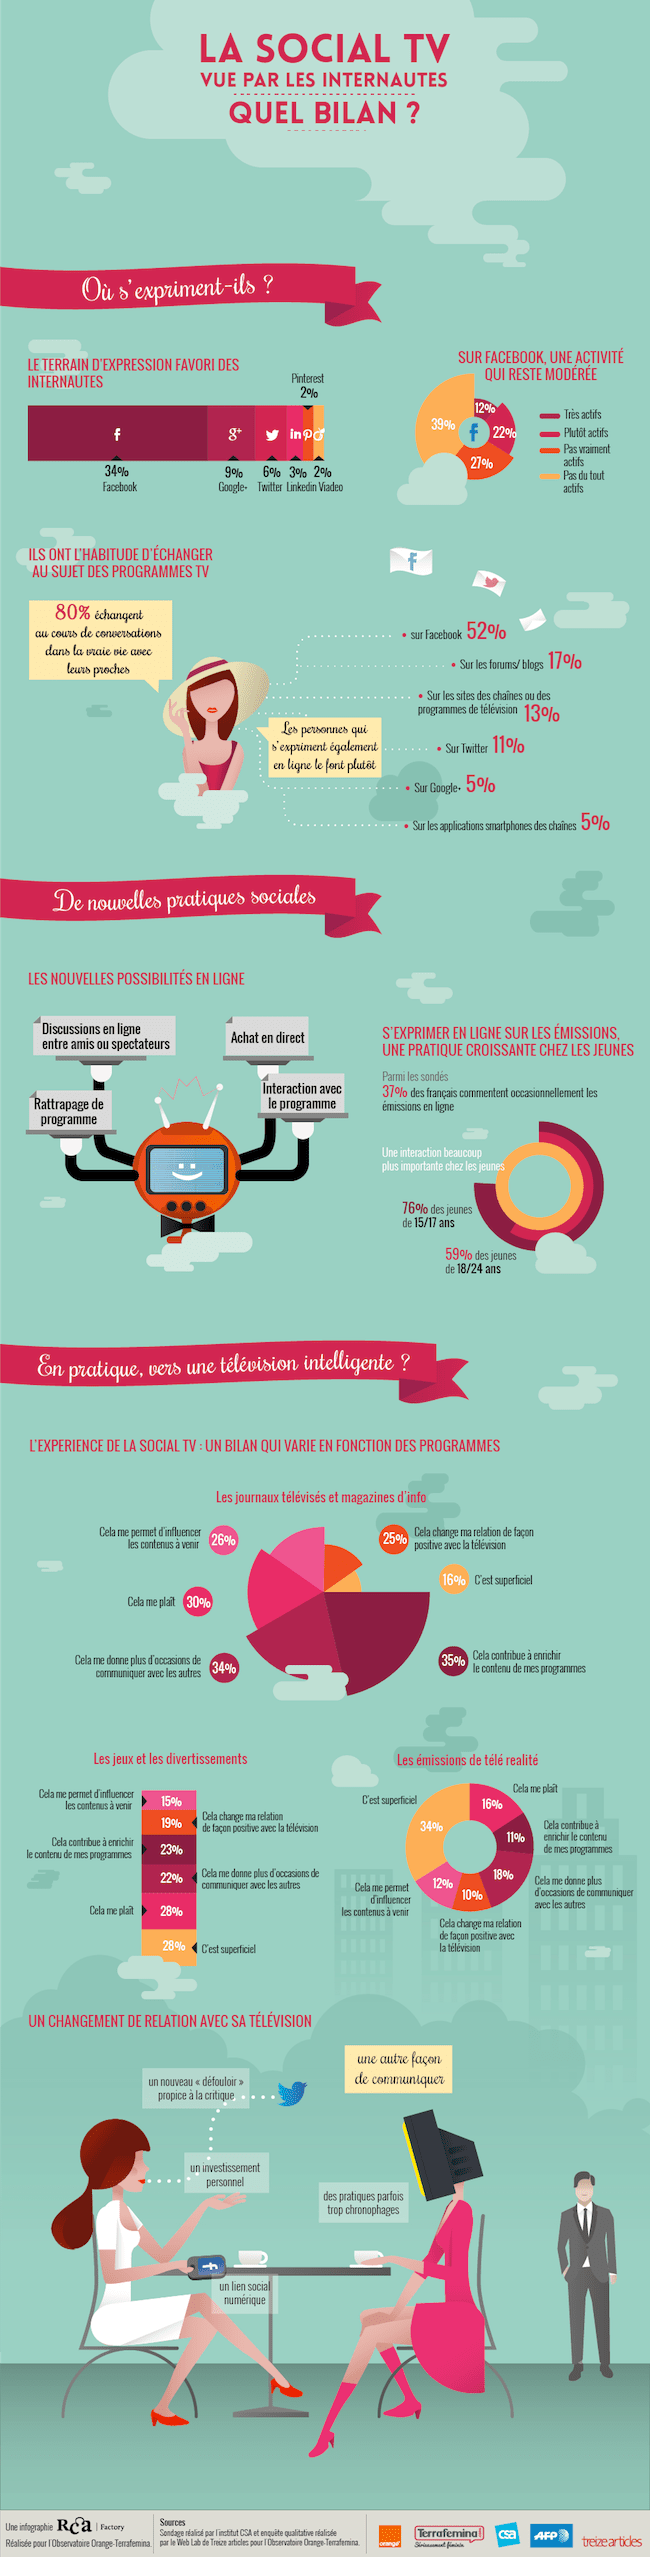 infographie_socialtv_version web_v2